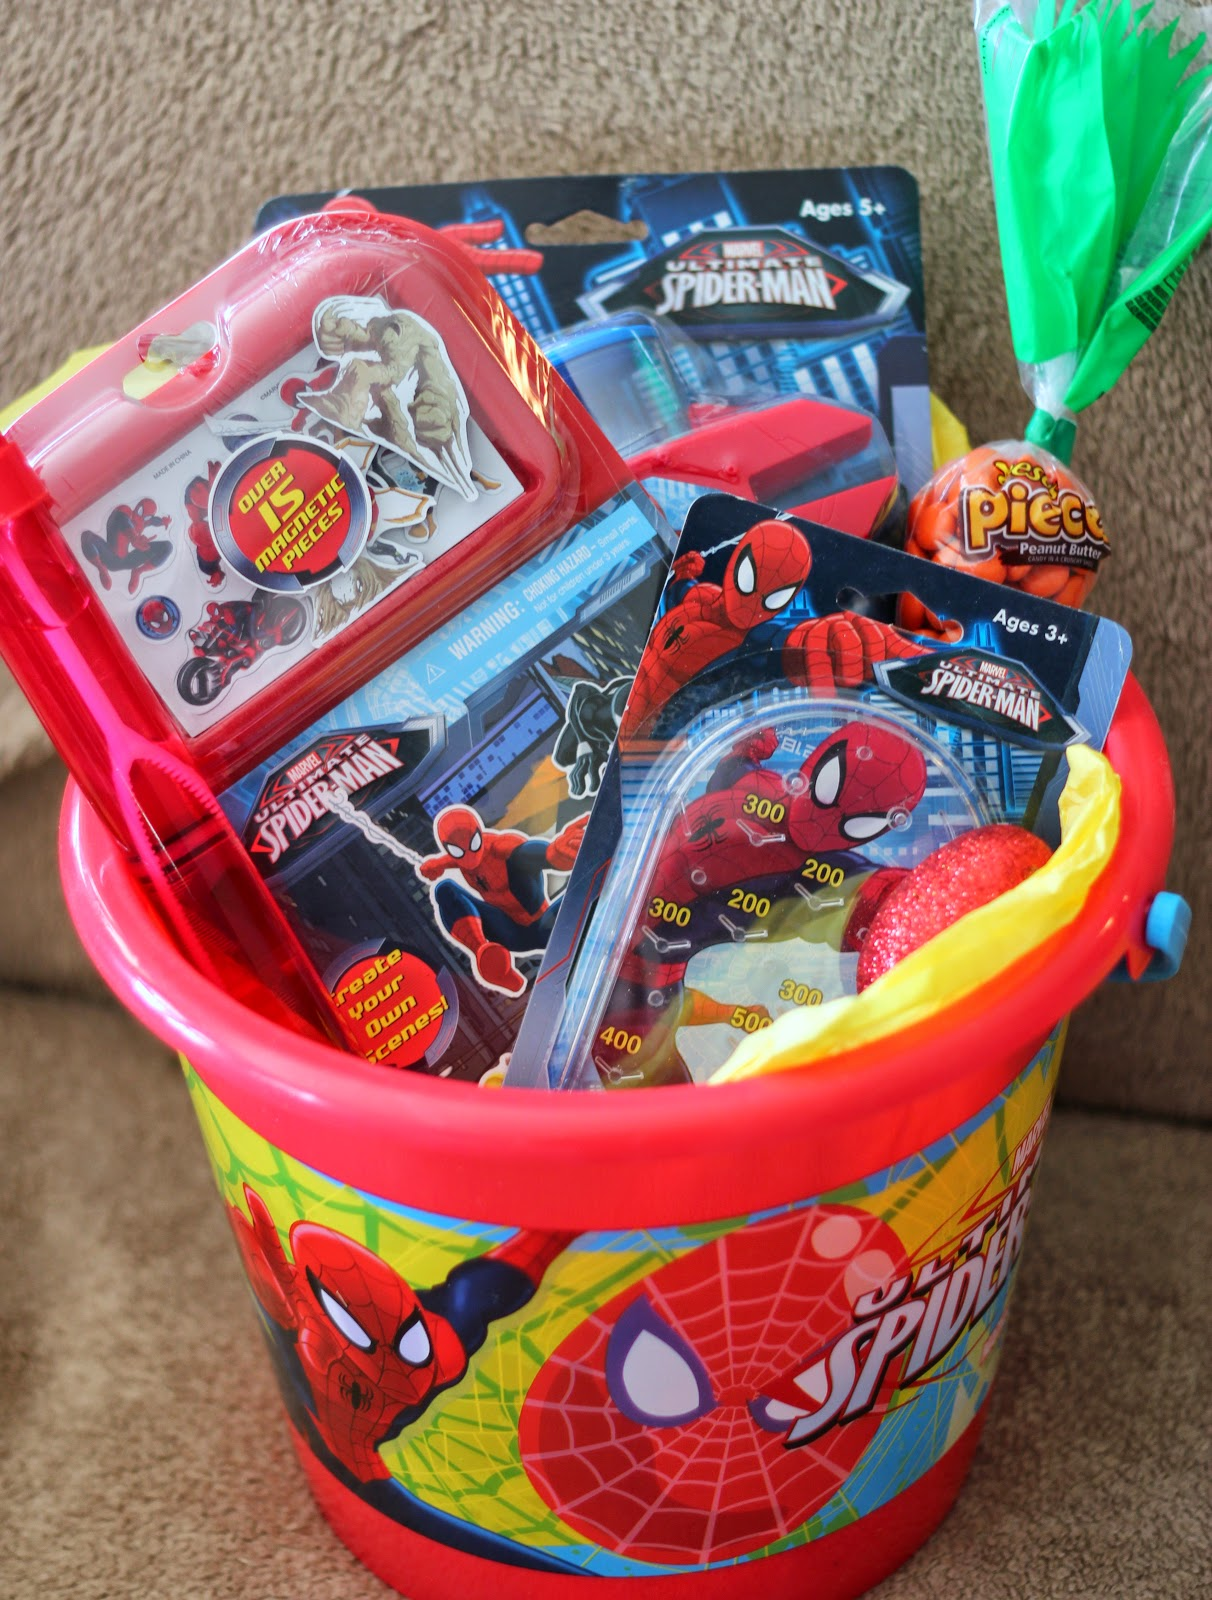 Lille punkin 5 easy character easter basket ideas for under 20 5 negle Choice Image